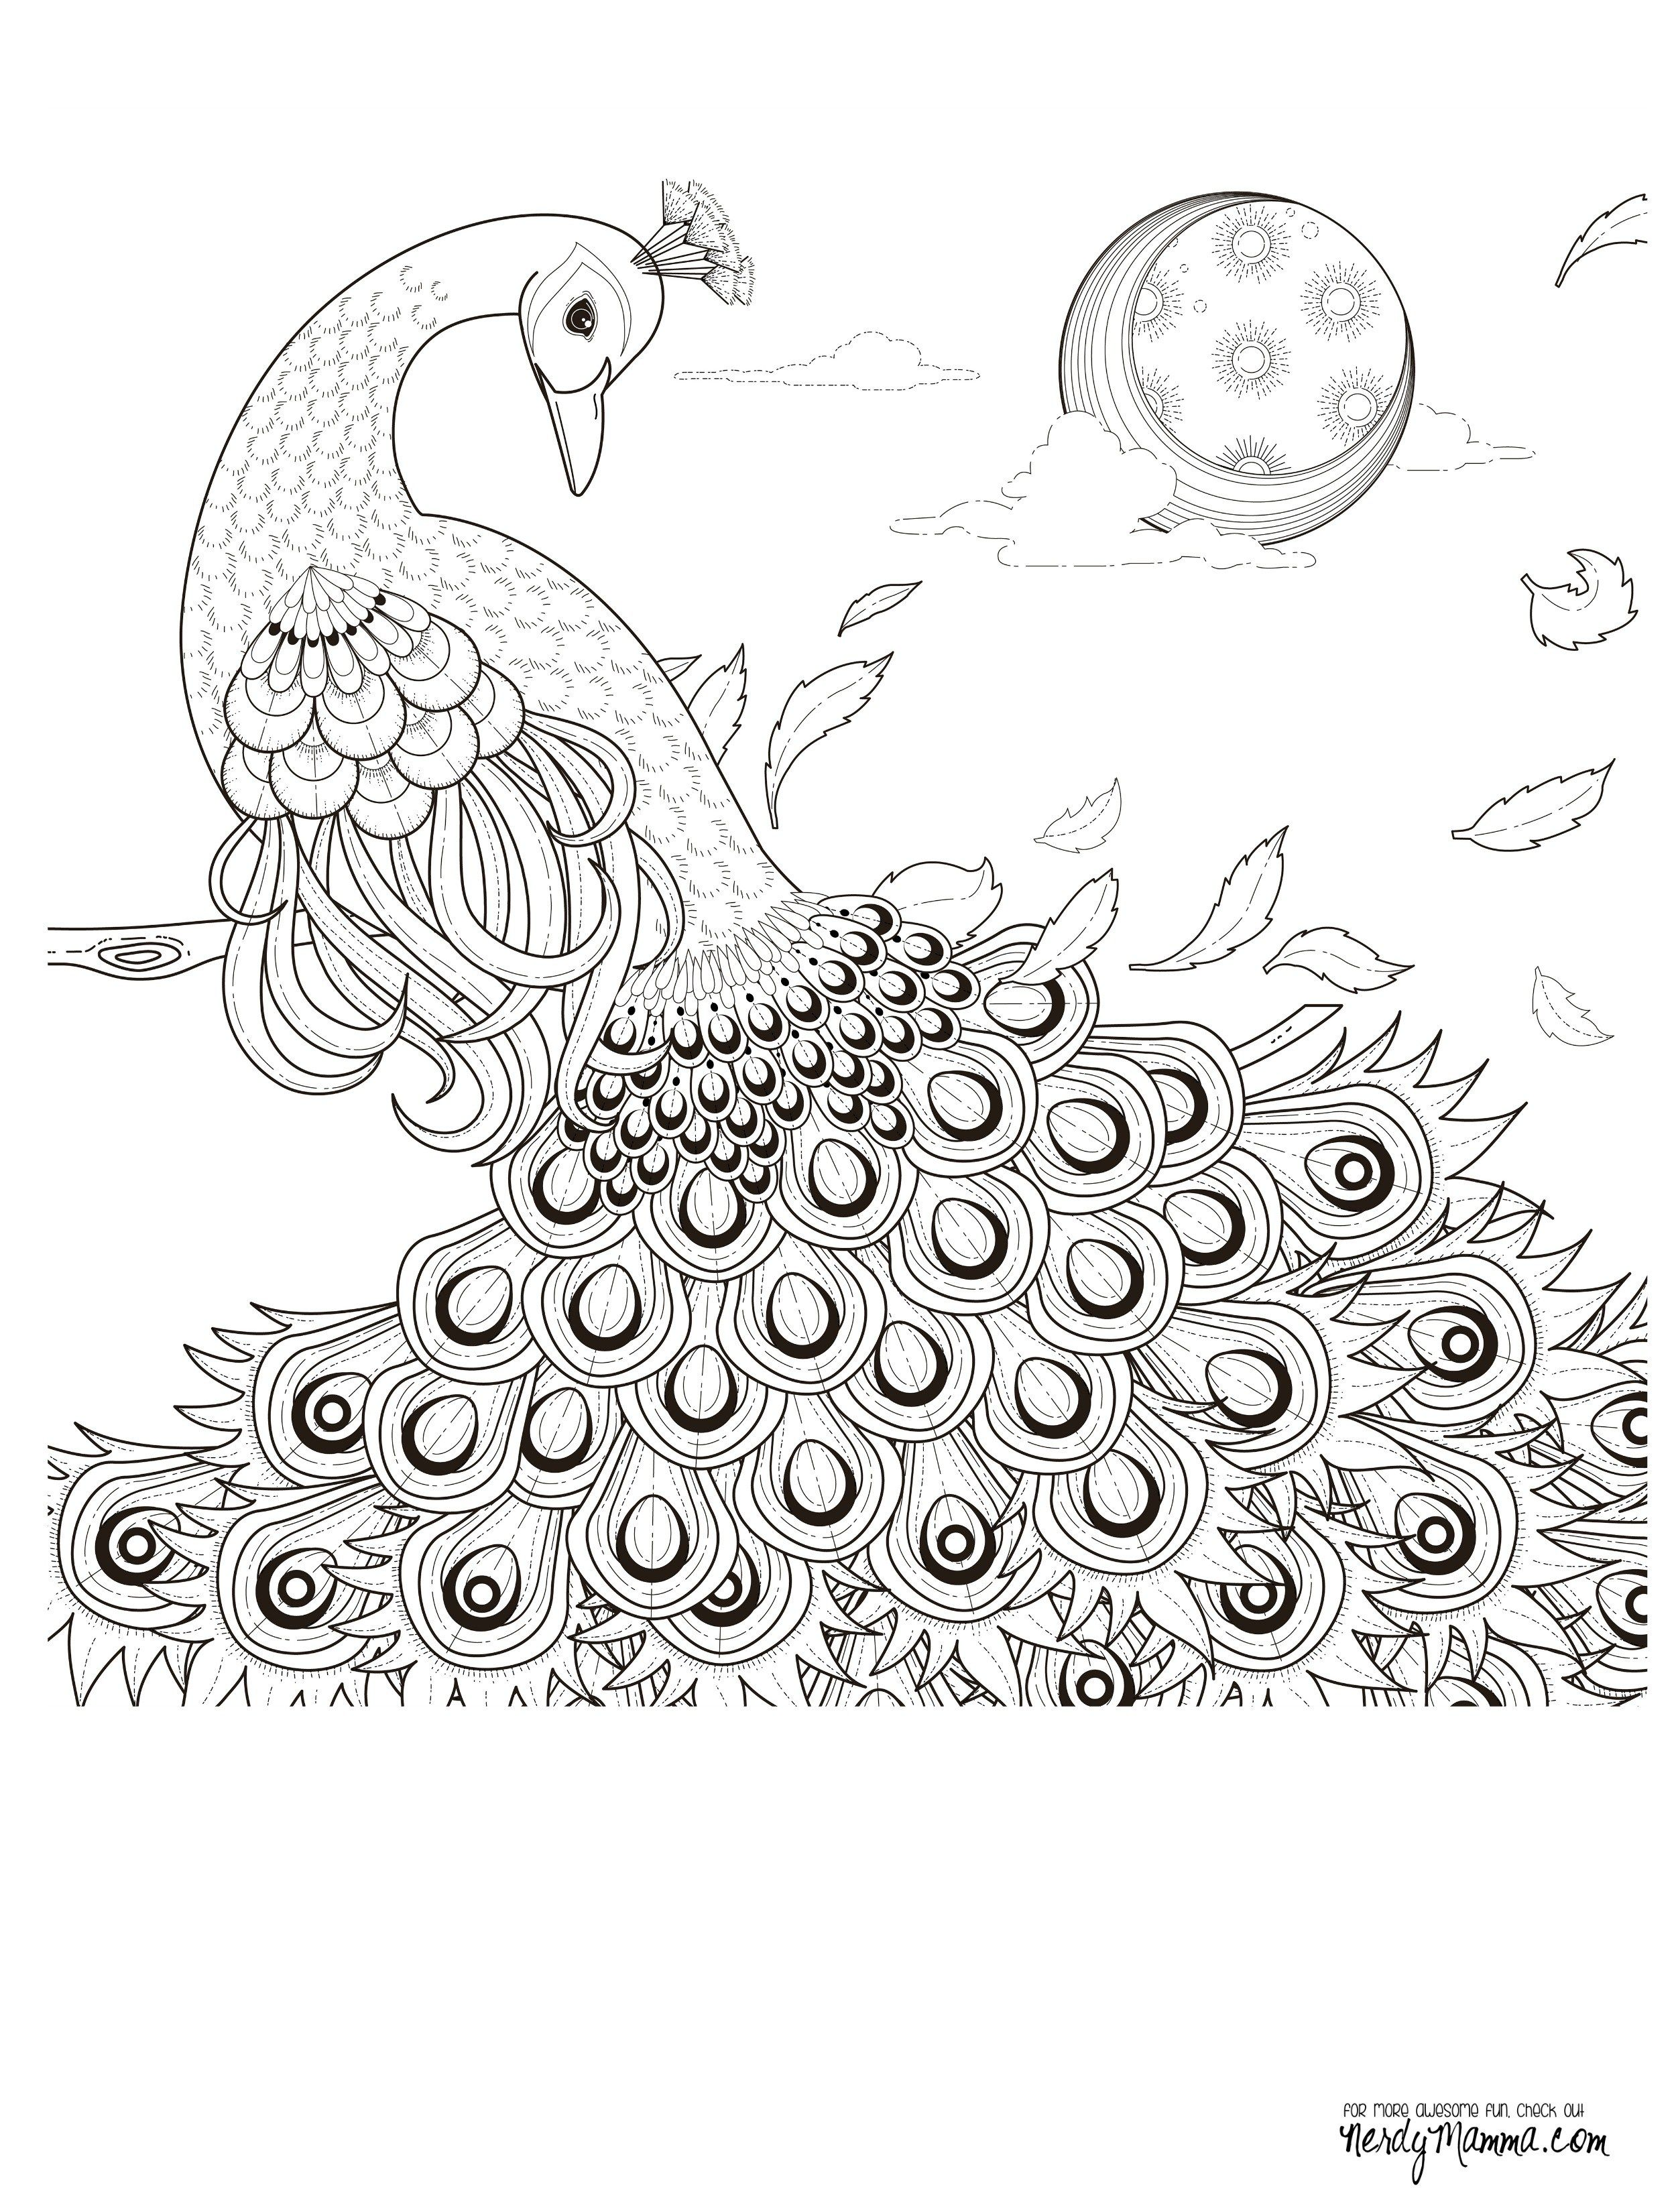 Pin On Peacocks Art Coloring